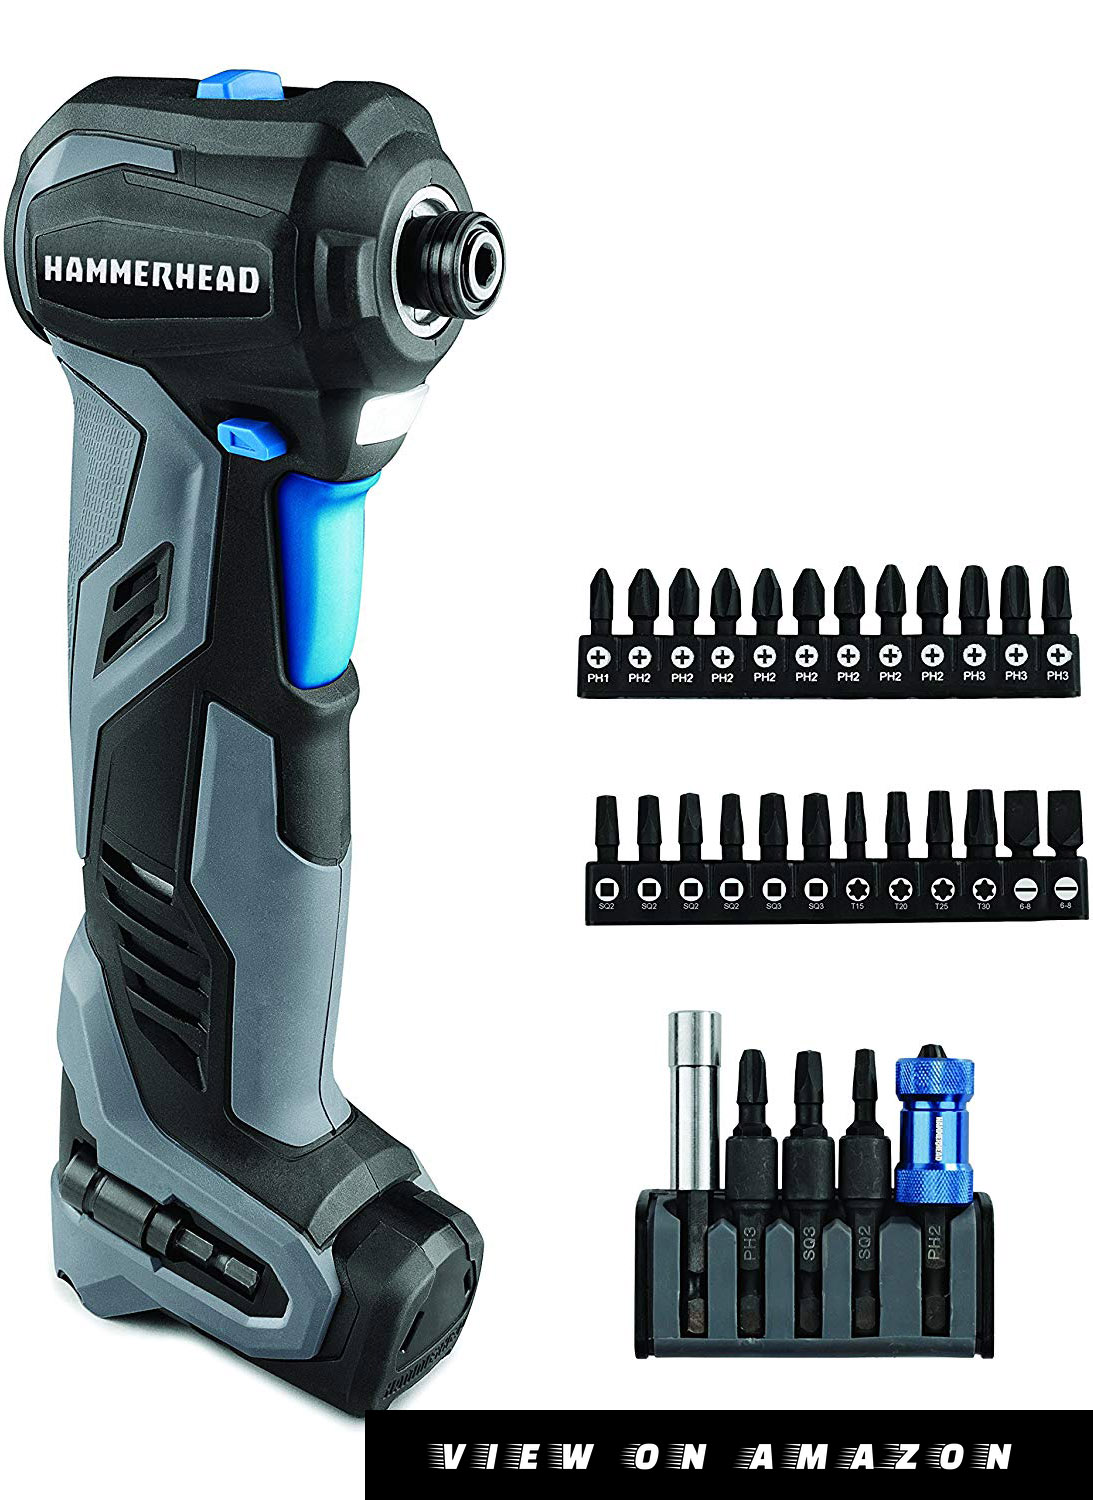 HAMMERHEAD – Best Impact Driver For Working On Cars